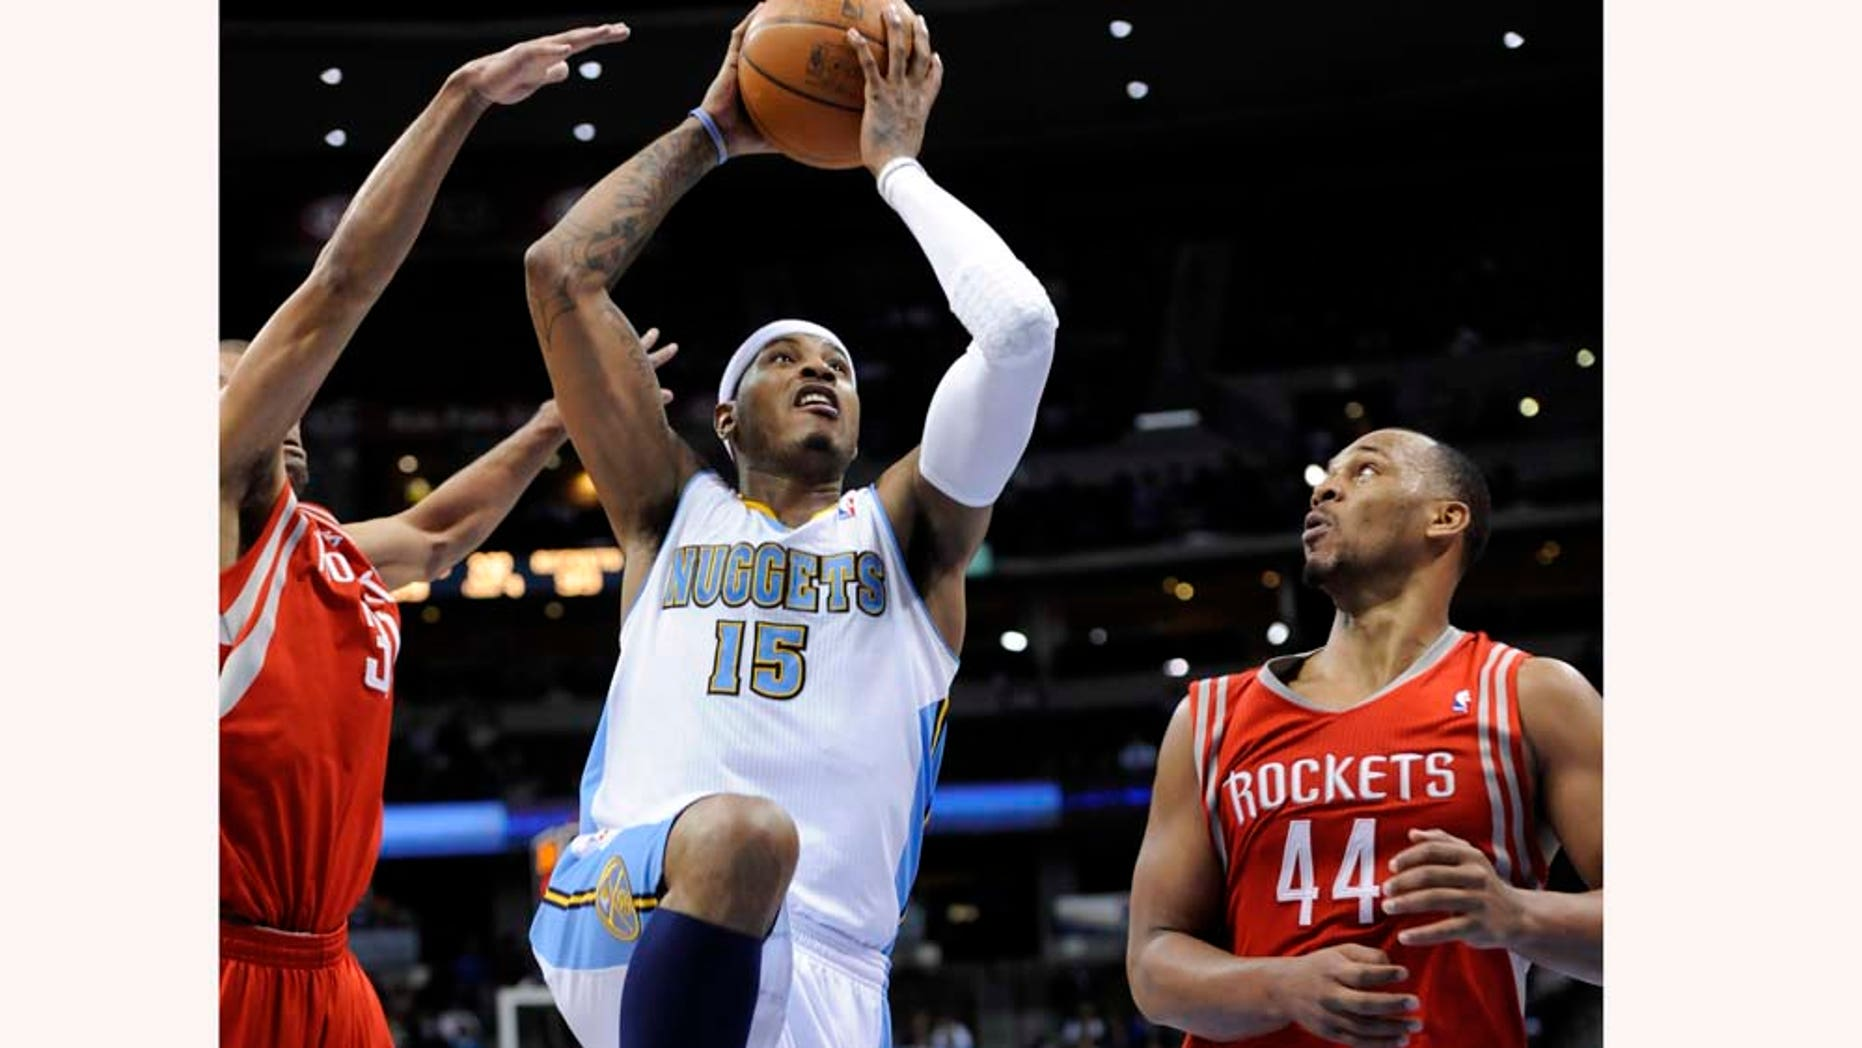 Denver Nuggets forward Carmelo Anthony (15) goes up for a shot against Houston Rockets center Chuck Hayes (44) during the fourth quarter of an NBA basketball game on  Monday, Feb. 7, 2011, in Denver. Houston beat Denver 108-103. (AP Photo/Jack Dempsey)